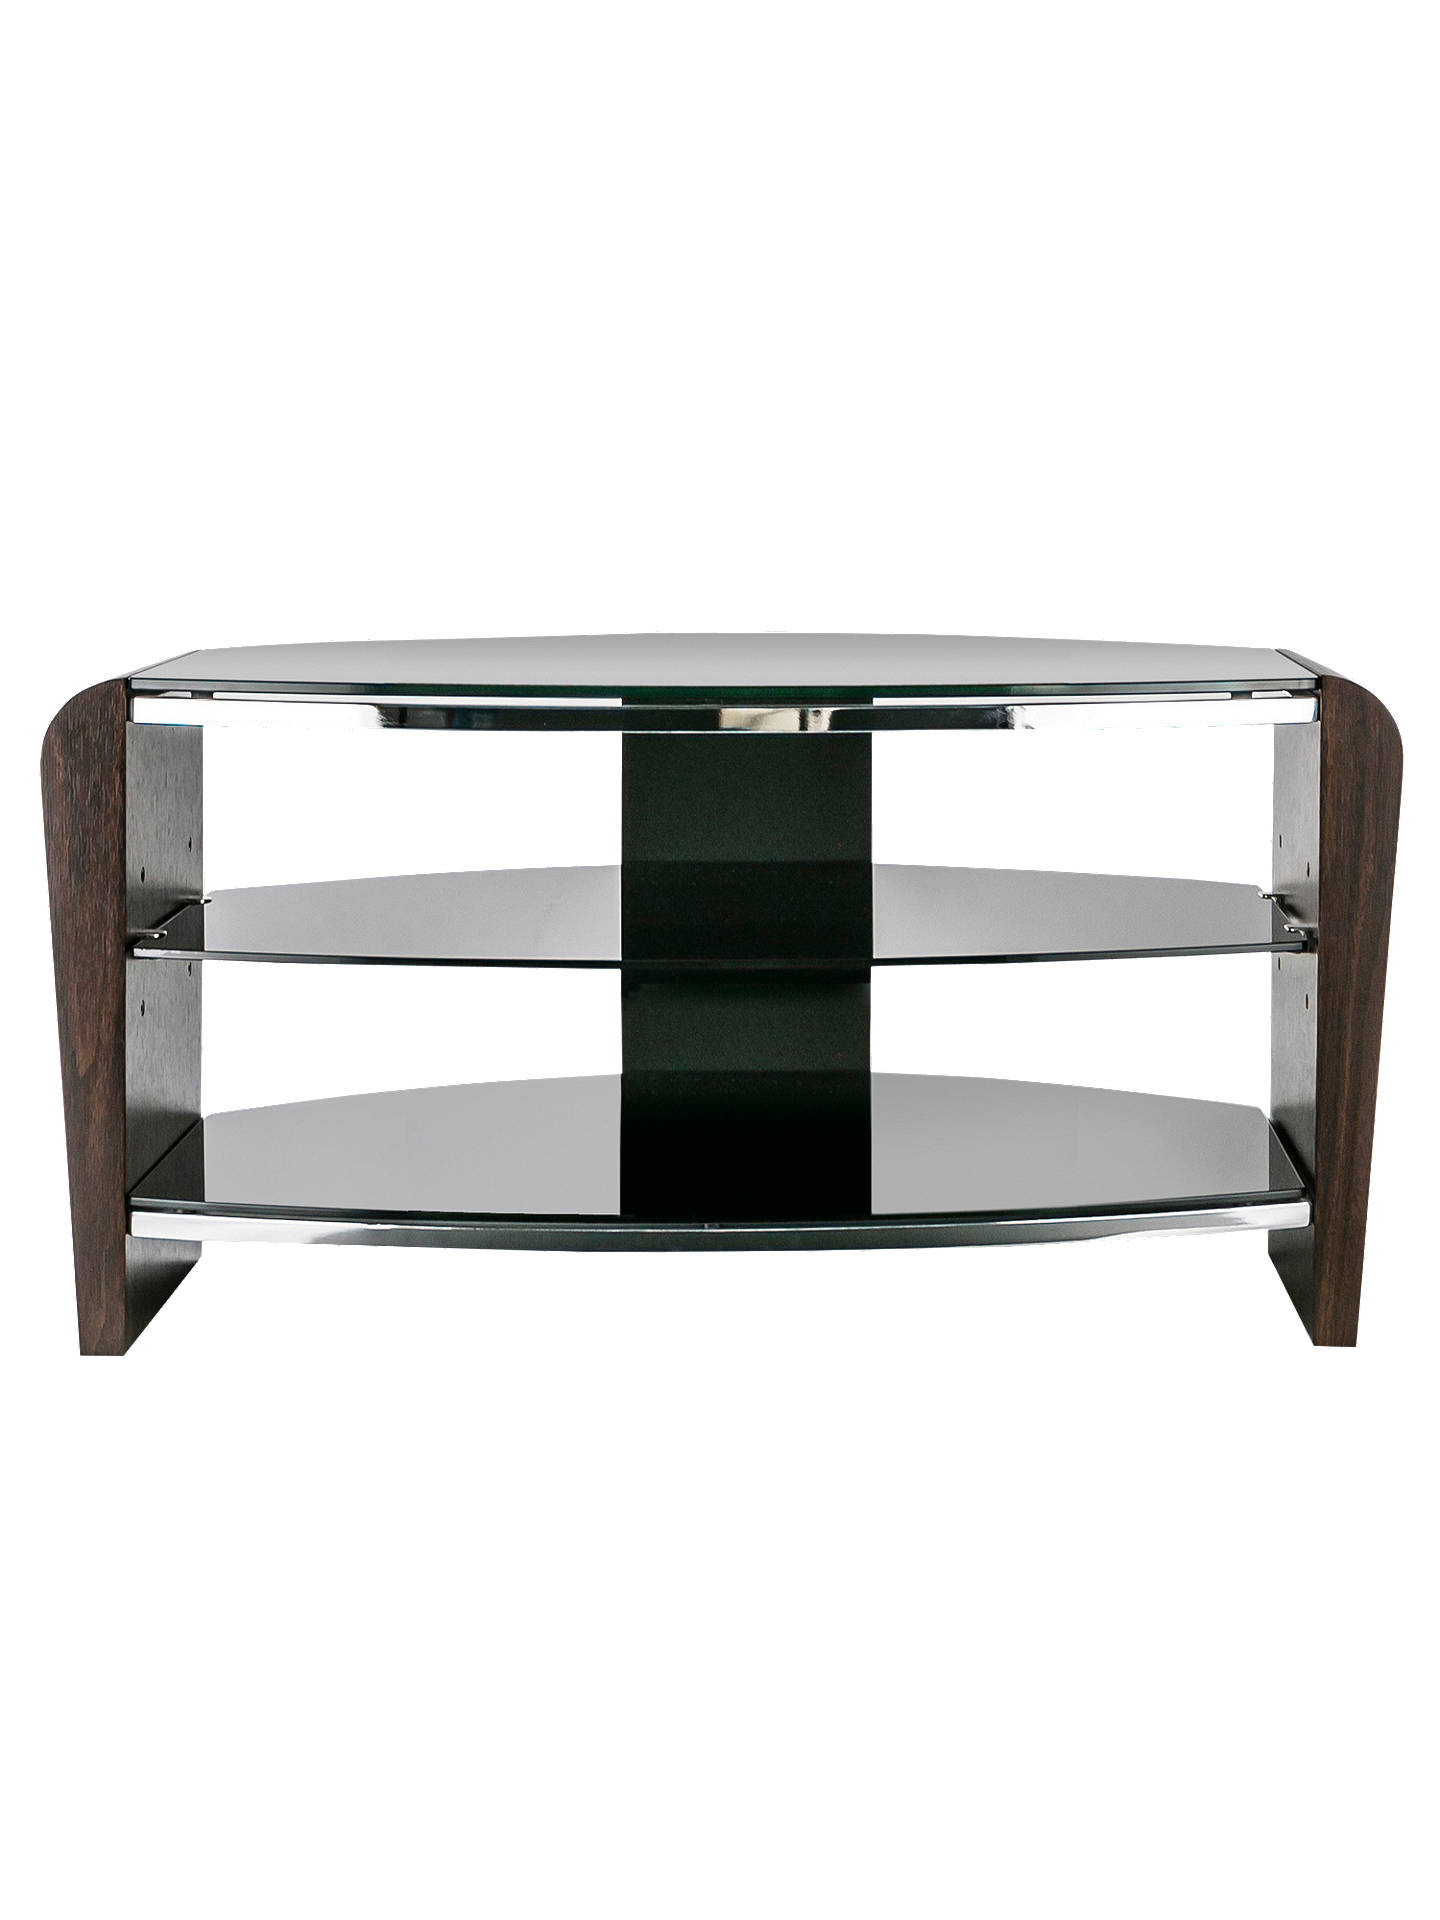 Buyalphason francium 80 tv stand for up to 37 black walnut online at